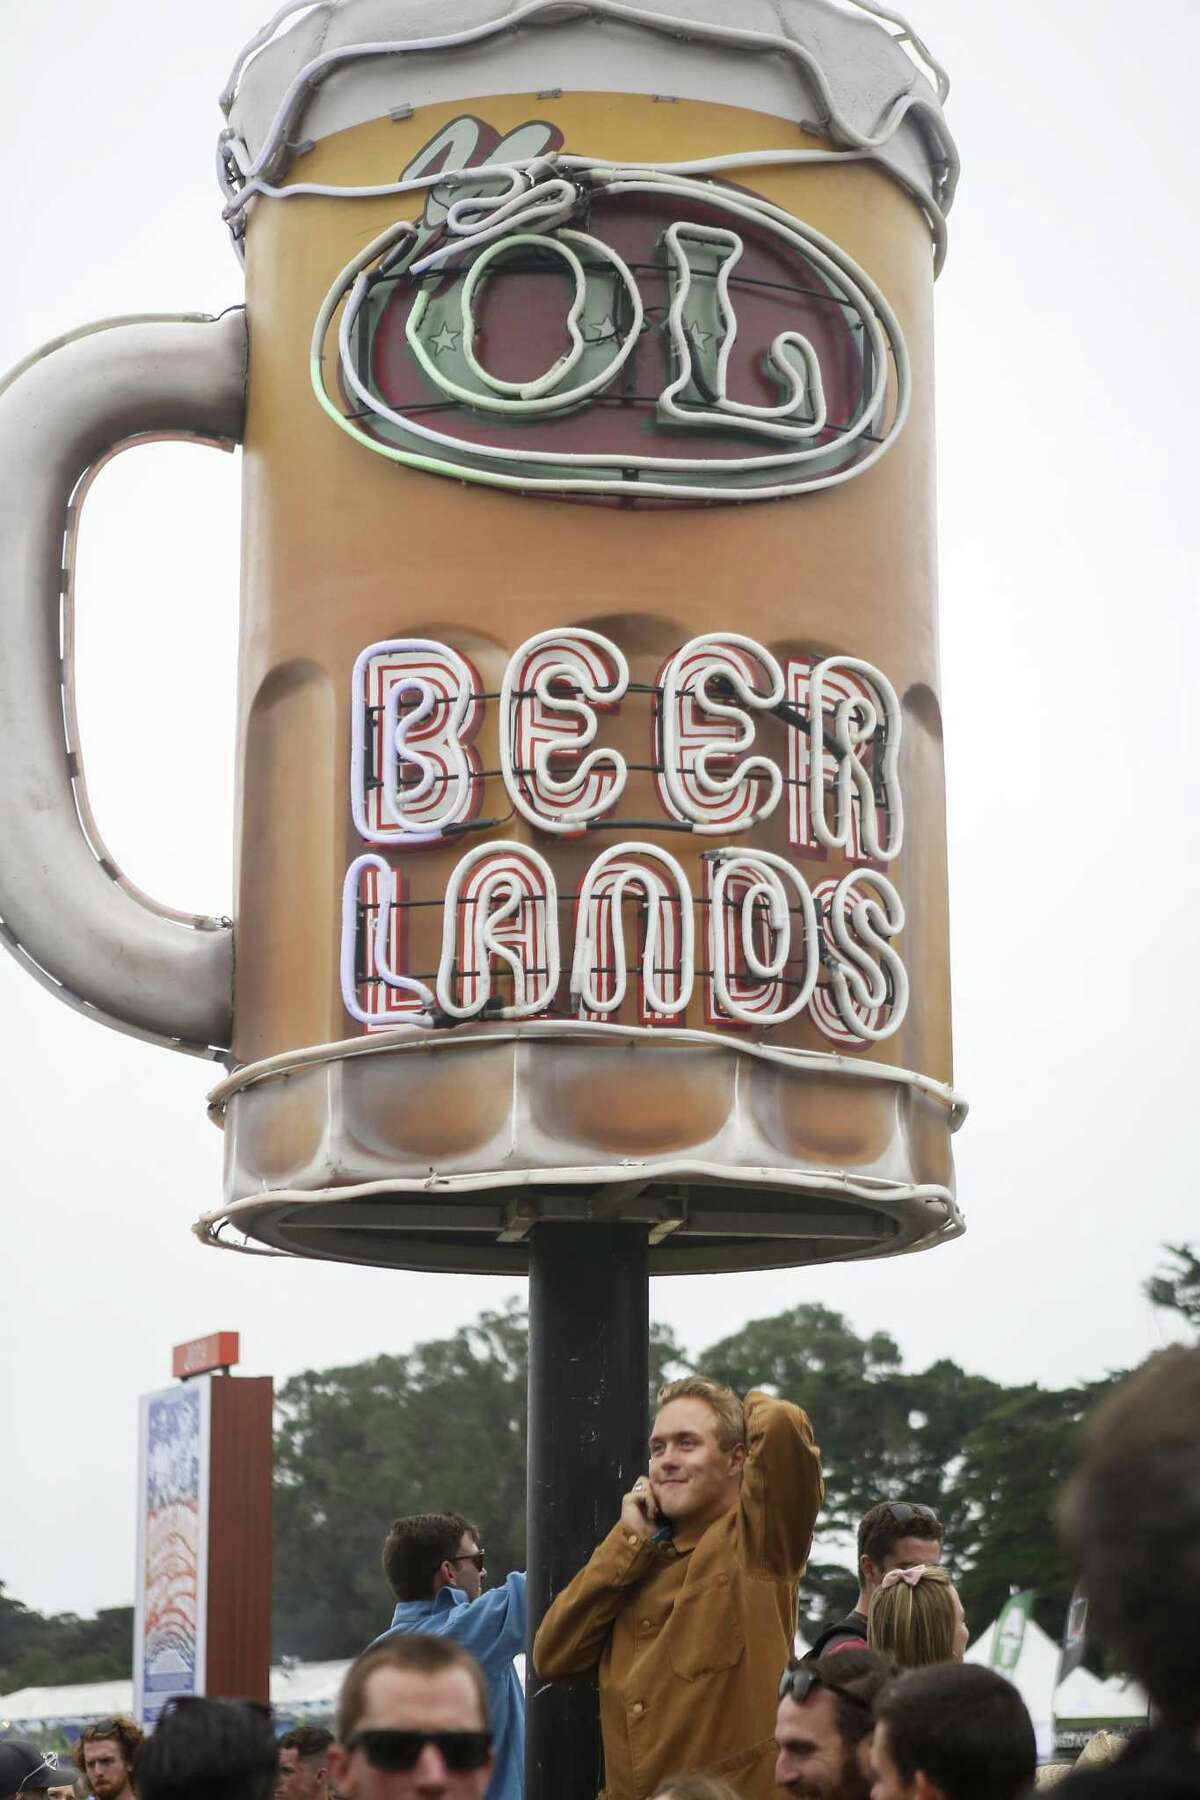 A man looks for a friend in the crowd outside Beer Lands during the 10th annual Outside Lands Festival in Golden Gate Park in San Francisco on Saturday, August 12, 2017.